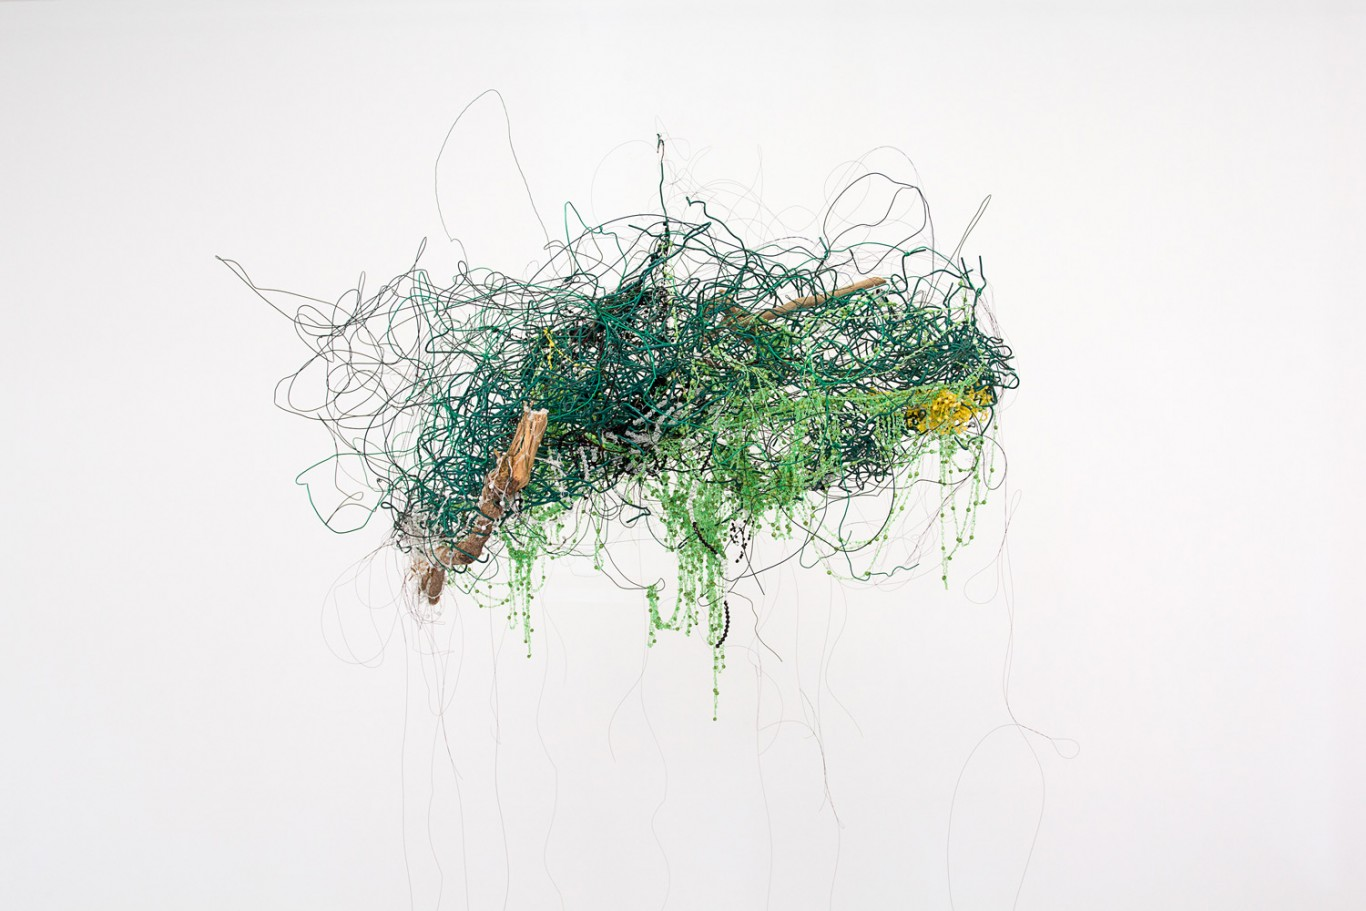 Igshaan Adams, Ontgroei, 2016. Found wire fence, wood, string-beaded necklaces and wire; approx. 110 x 90 x 43 cm